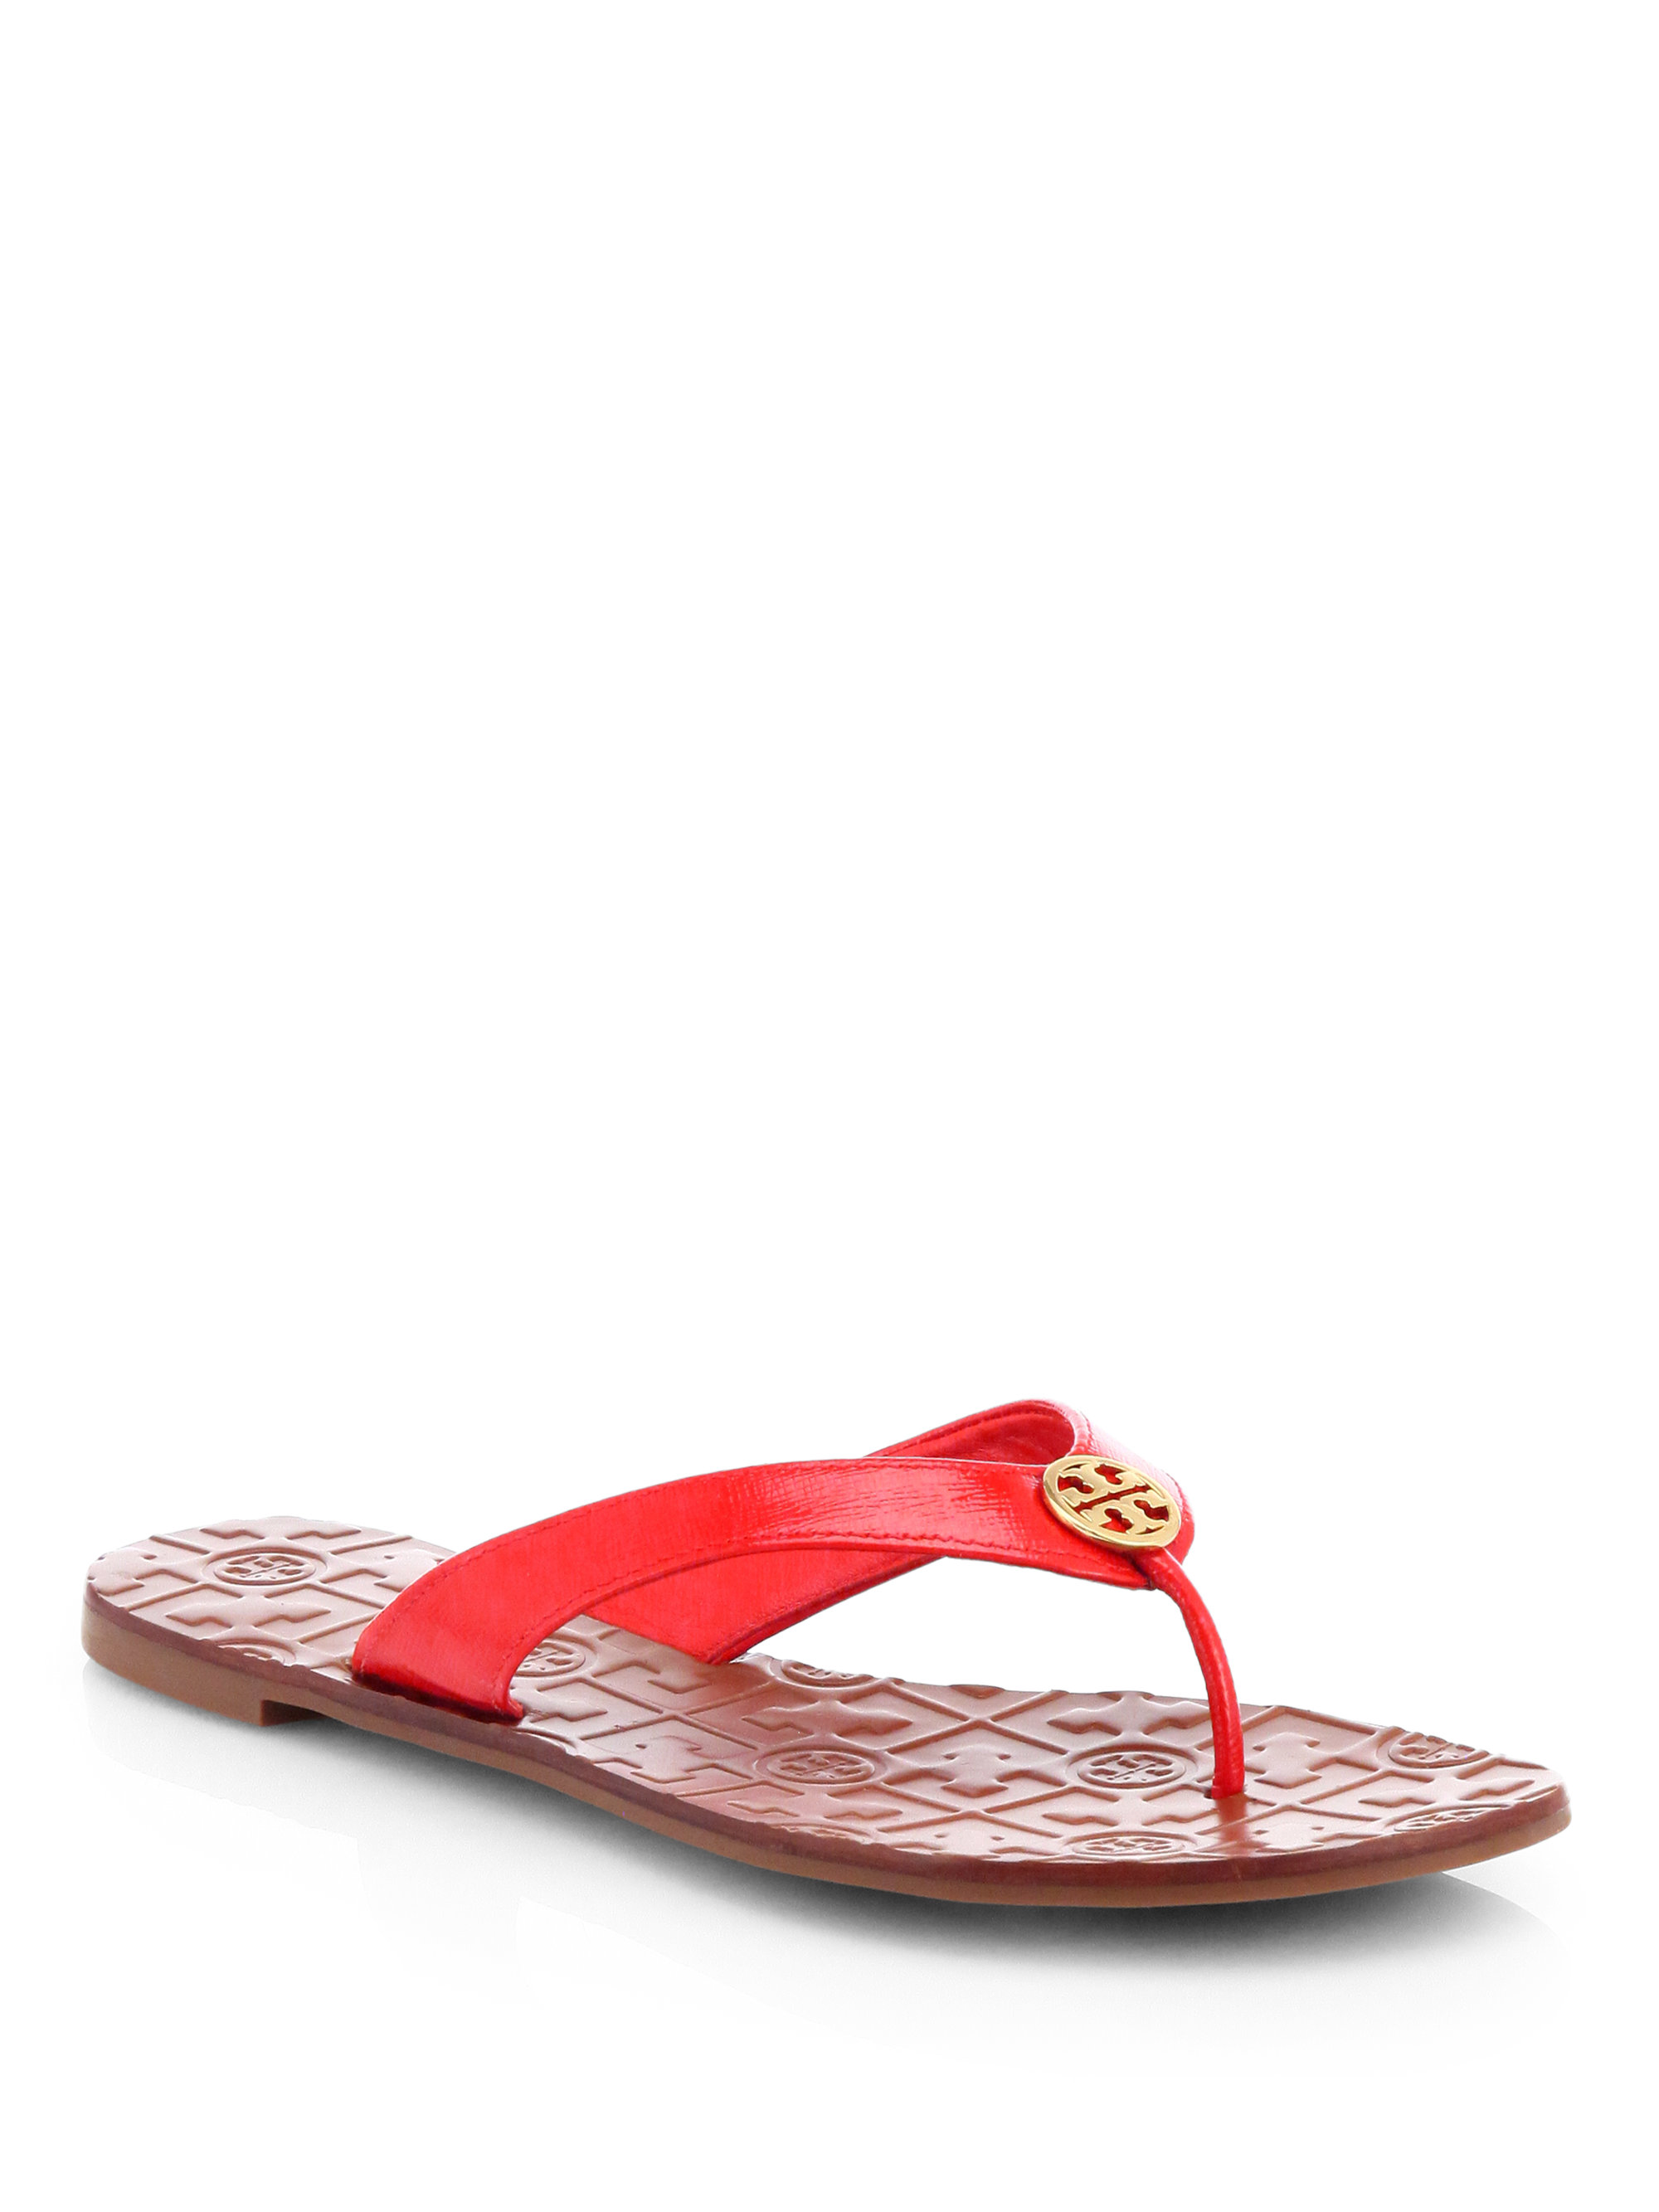 ba31501deae Lyst - Tory Burch Thora 2 Patent Leather Thong Sandals in Red